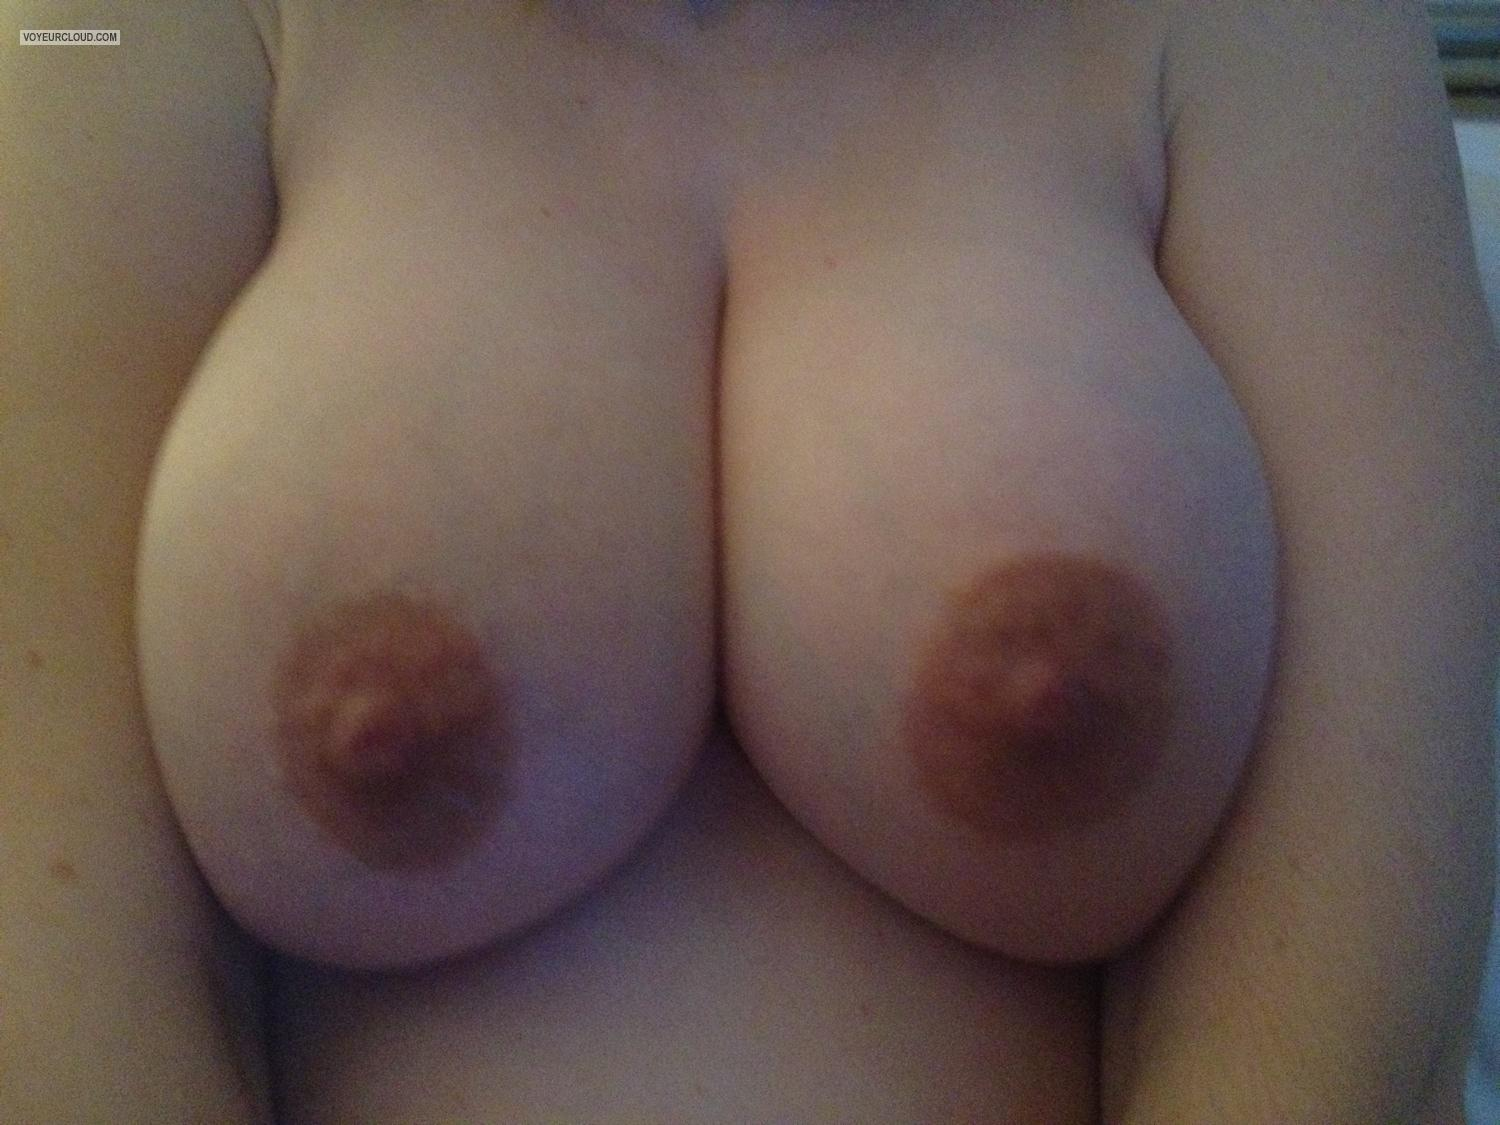 Tit Flash: My Big Tits By IPhone (Selfie) - Julie from United Kingdom